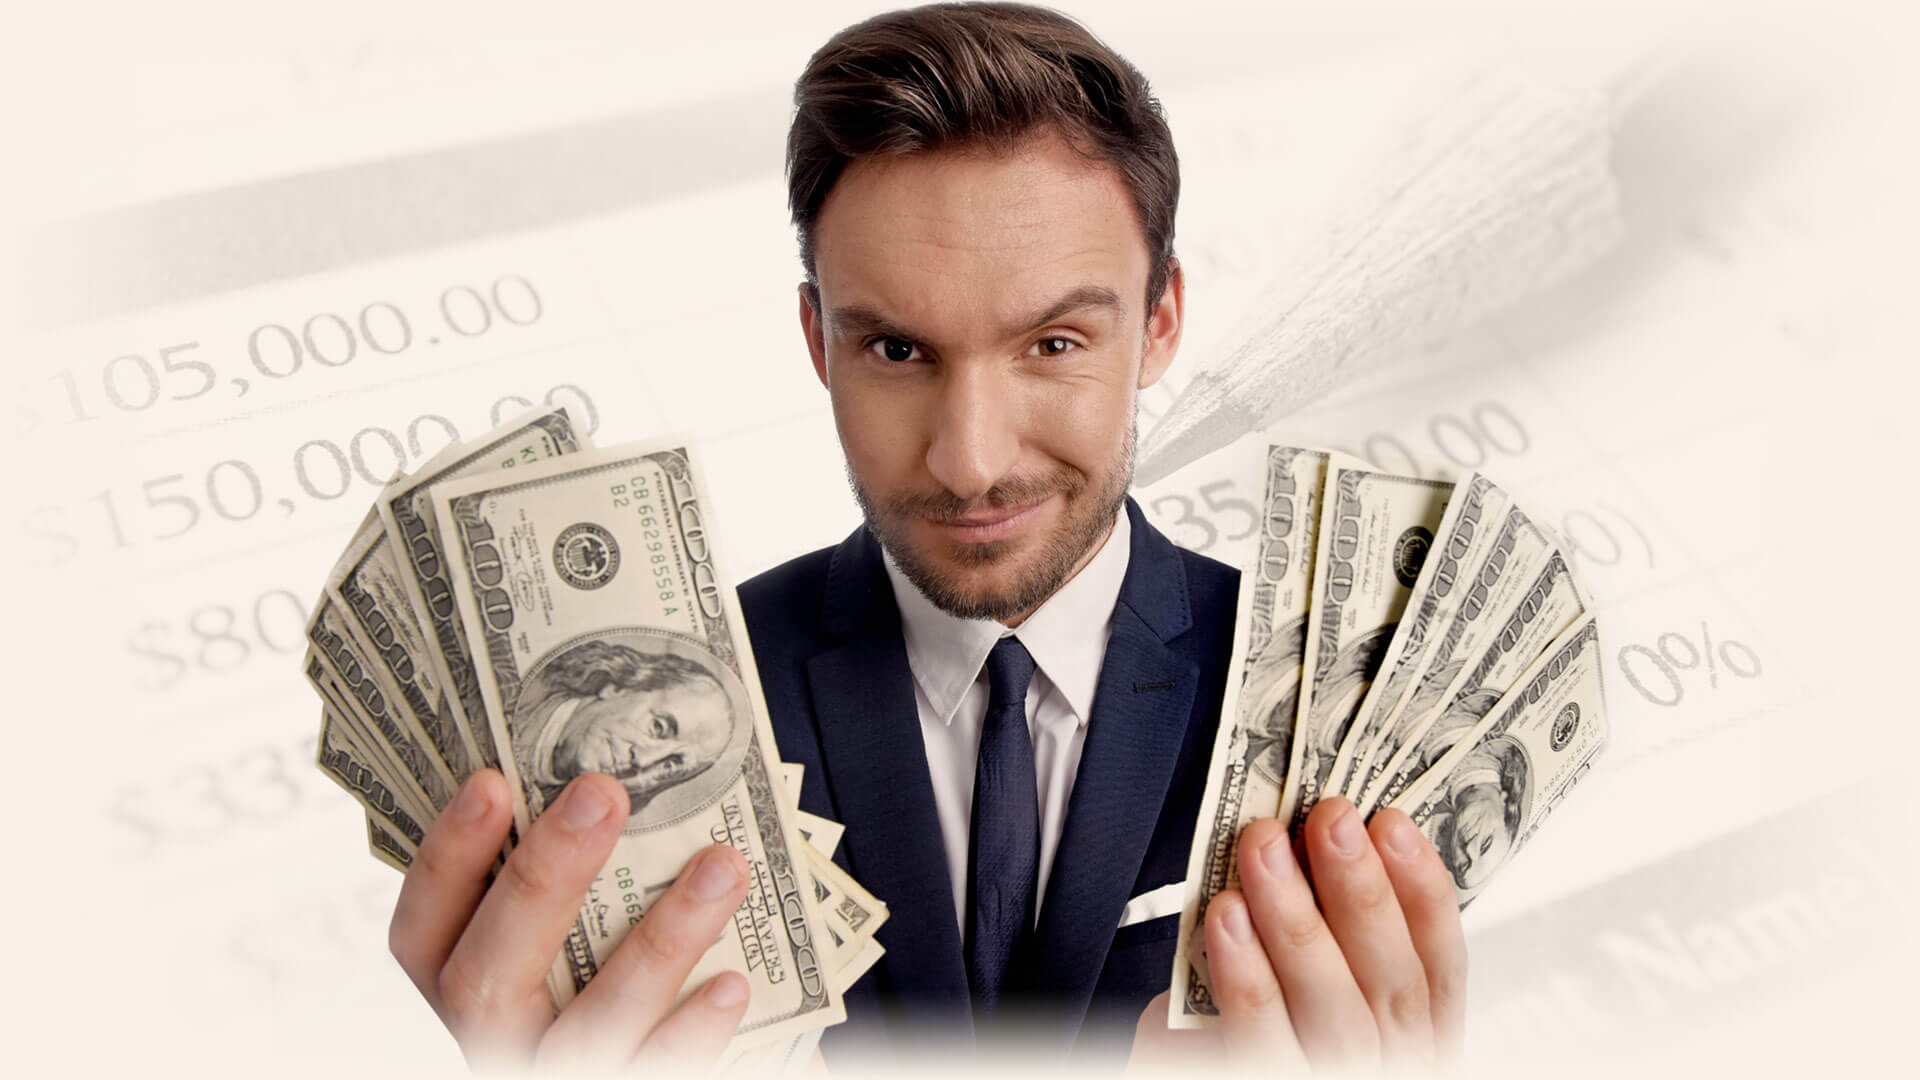 A man in a suit holding money on his two hands